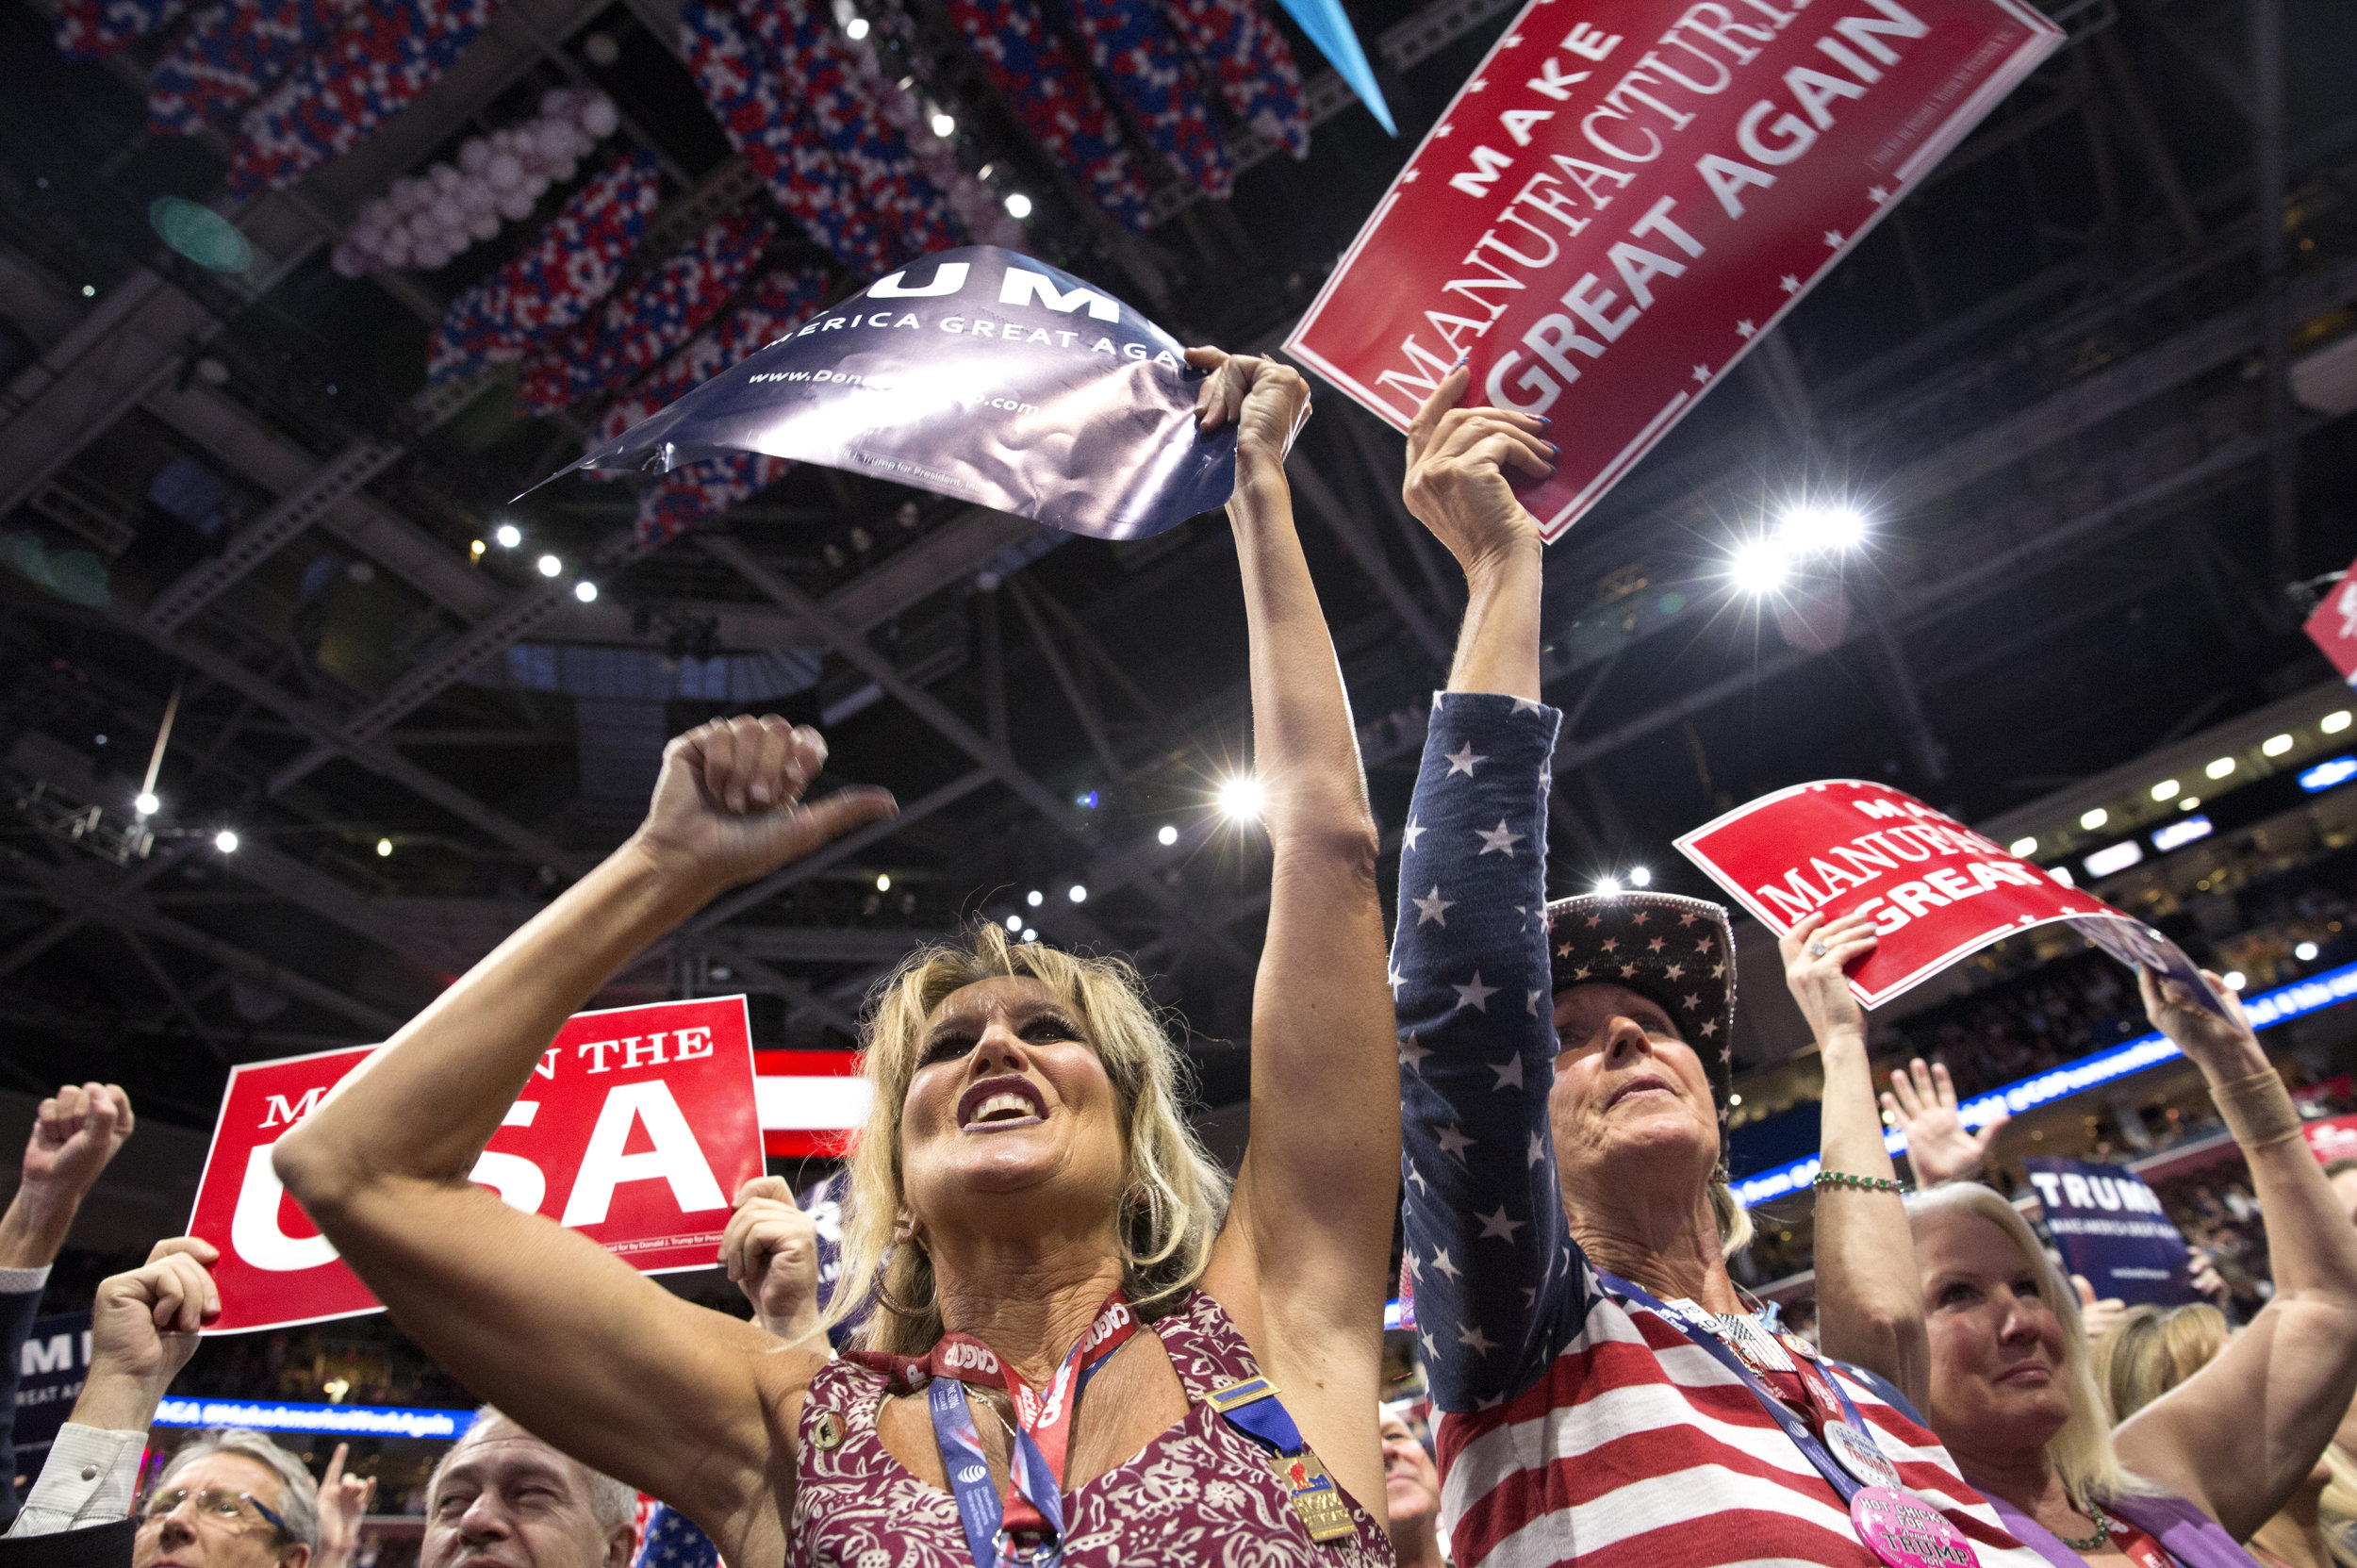 California delegates Kim Davis, left, and Elizabeth Ritchie, right, cheer after Chris Christie mentions Republican nominee Donald Trump on the second day of the Republican National Convention at the Quicken Loans Arena on Tuesday, July 19, 2016.